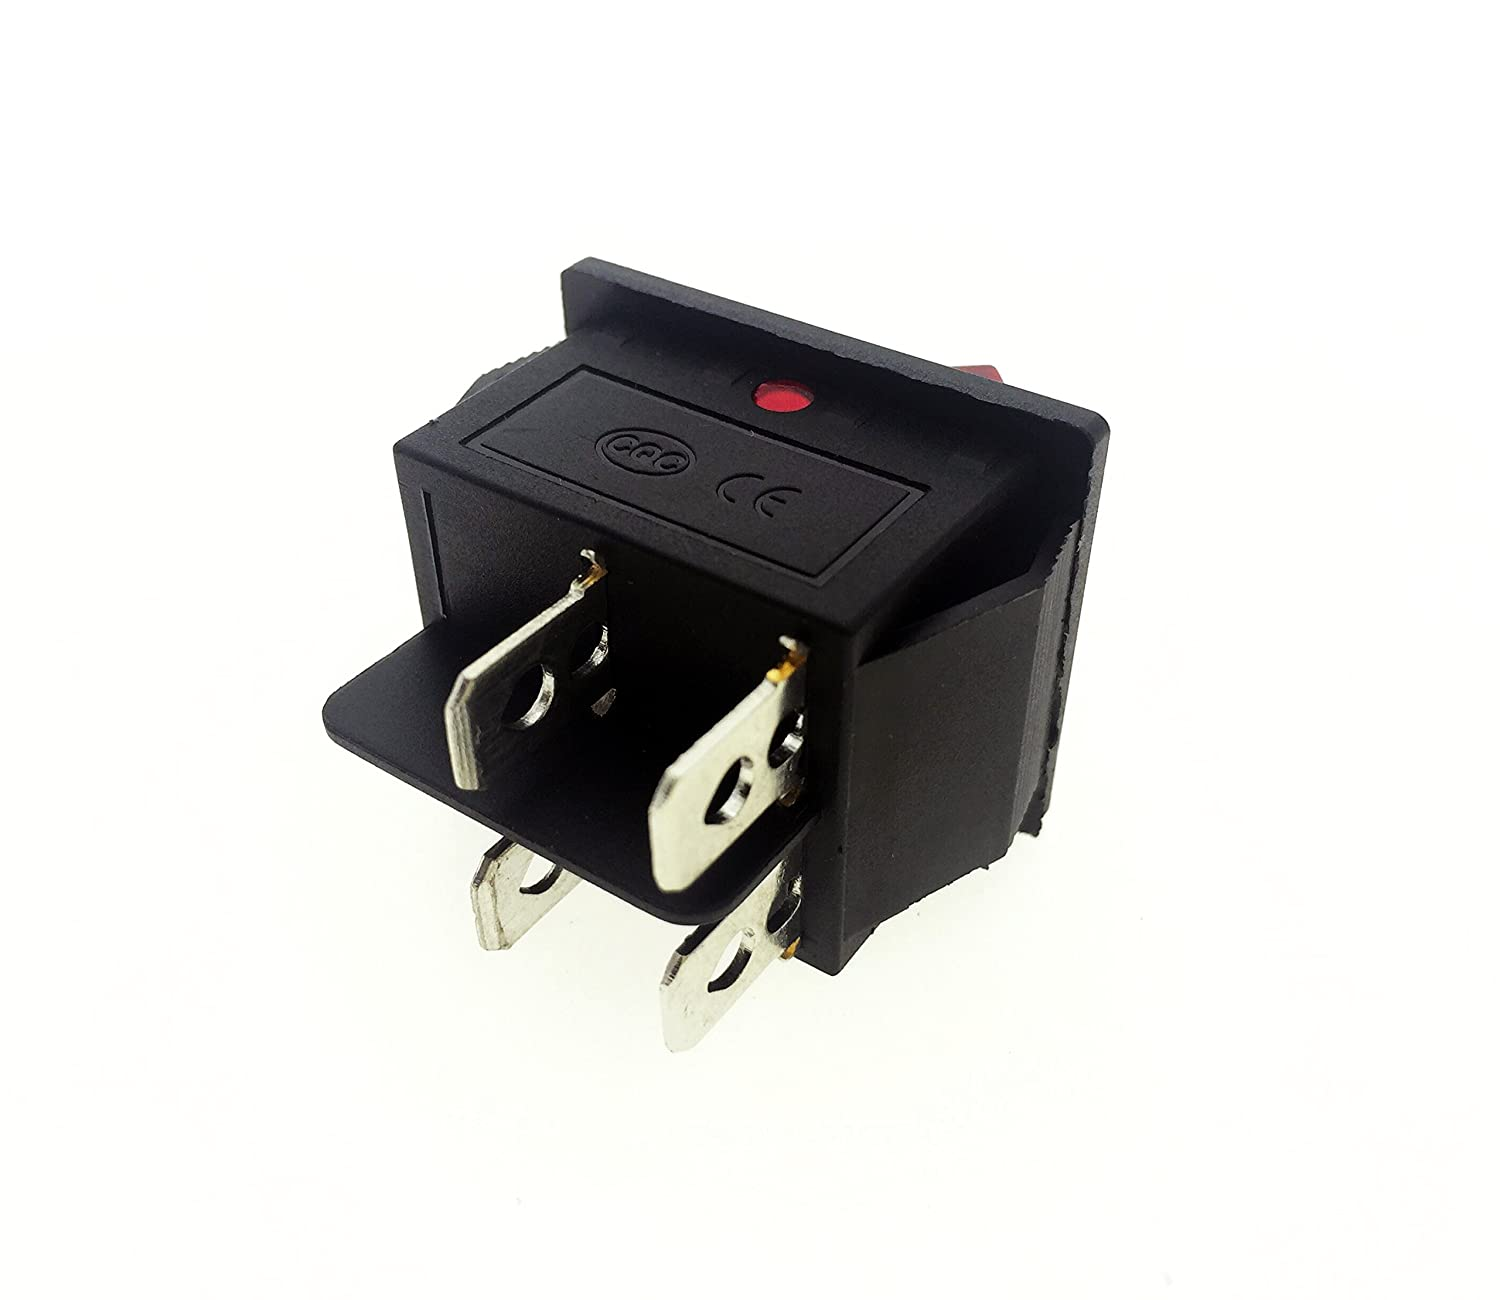 Red Light 4 Pin Dpst On Off Snap In Rocker Switch 15a Wiring Single Pole Throw Spst With Page 250v 20a 125v Ac 28x22mm Home Improvement